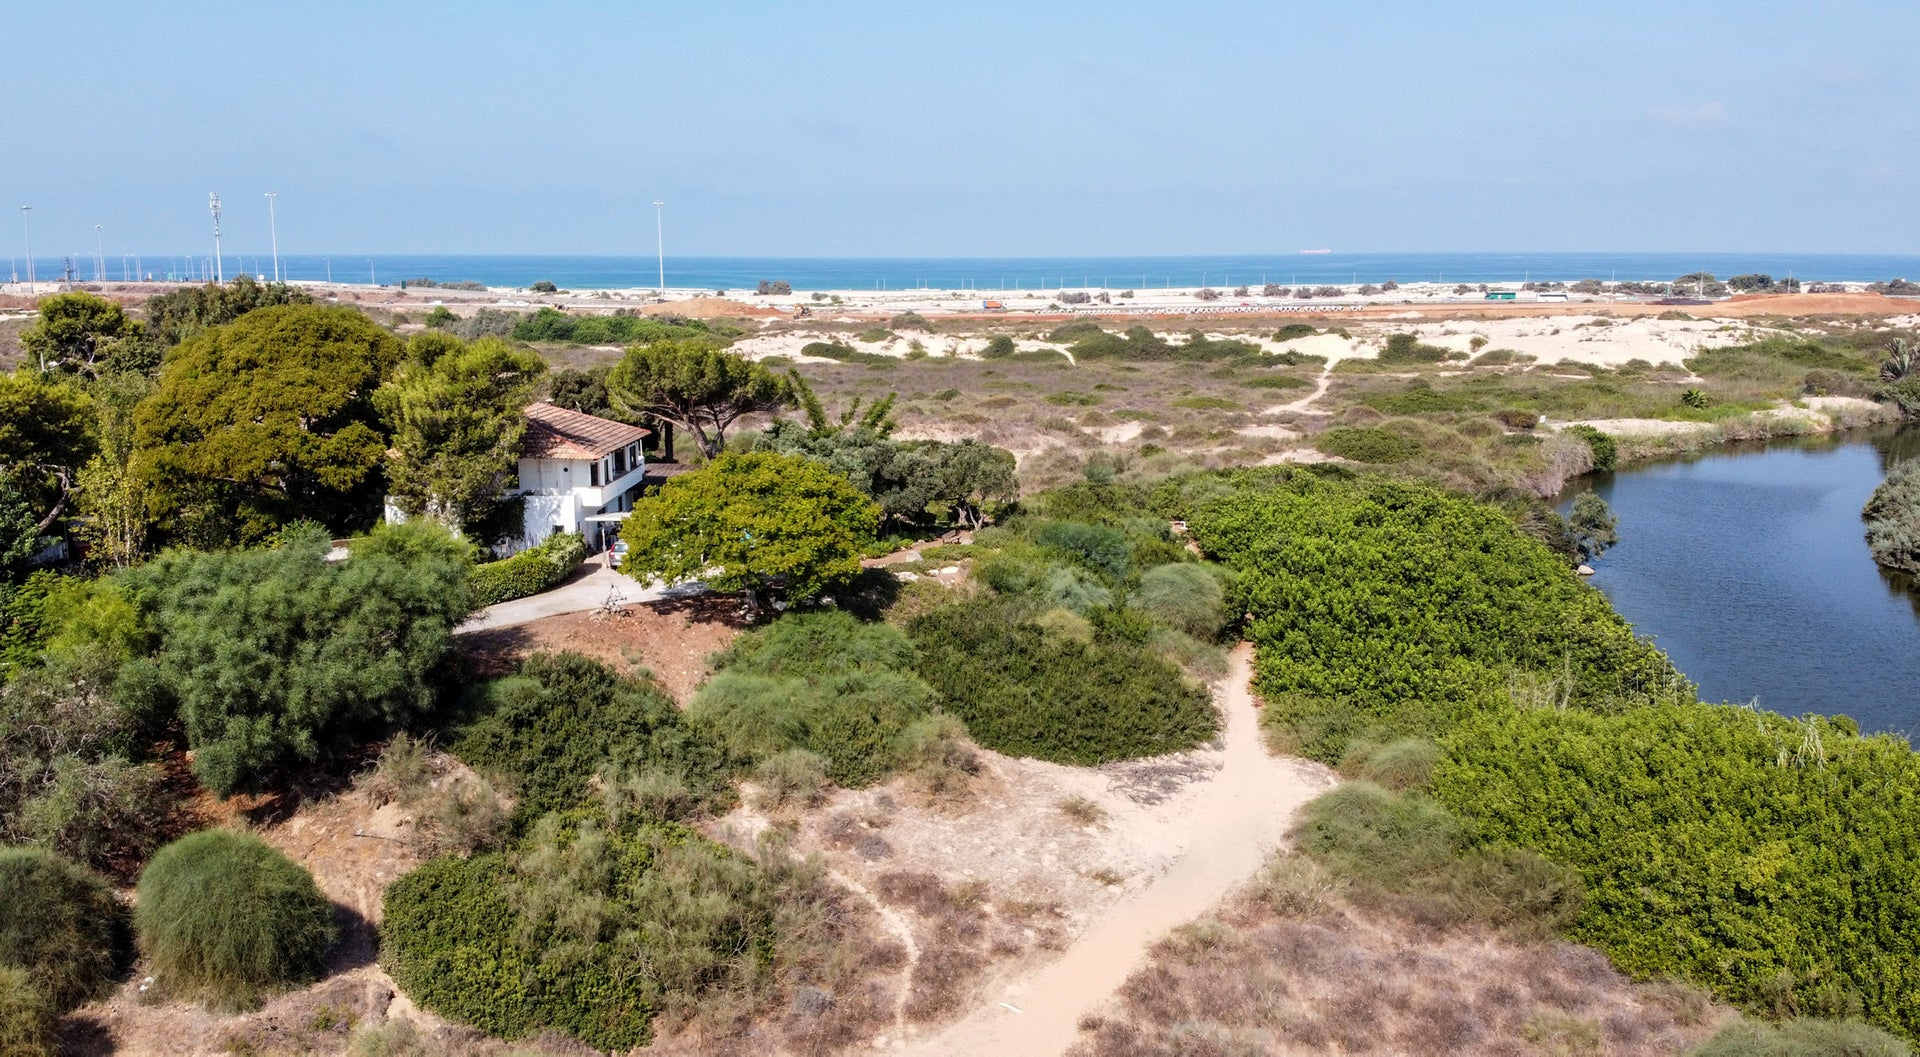 A home in Arsuf, a secluded, coastal village near Herzliya in central Israel, September 14, 2020